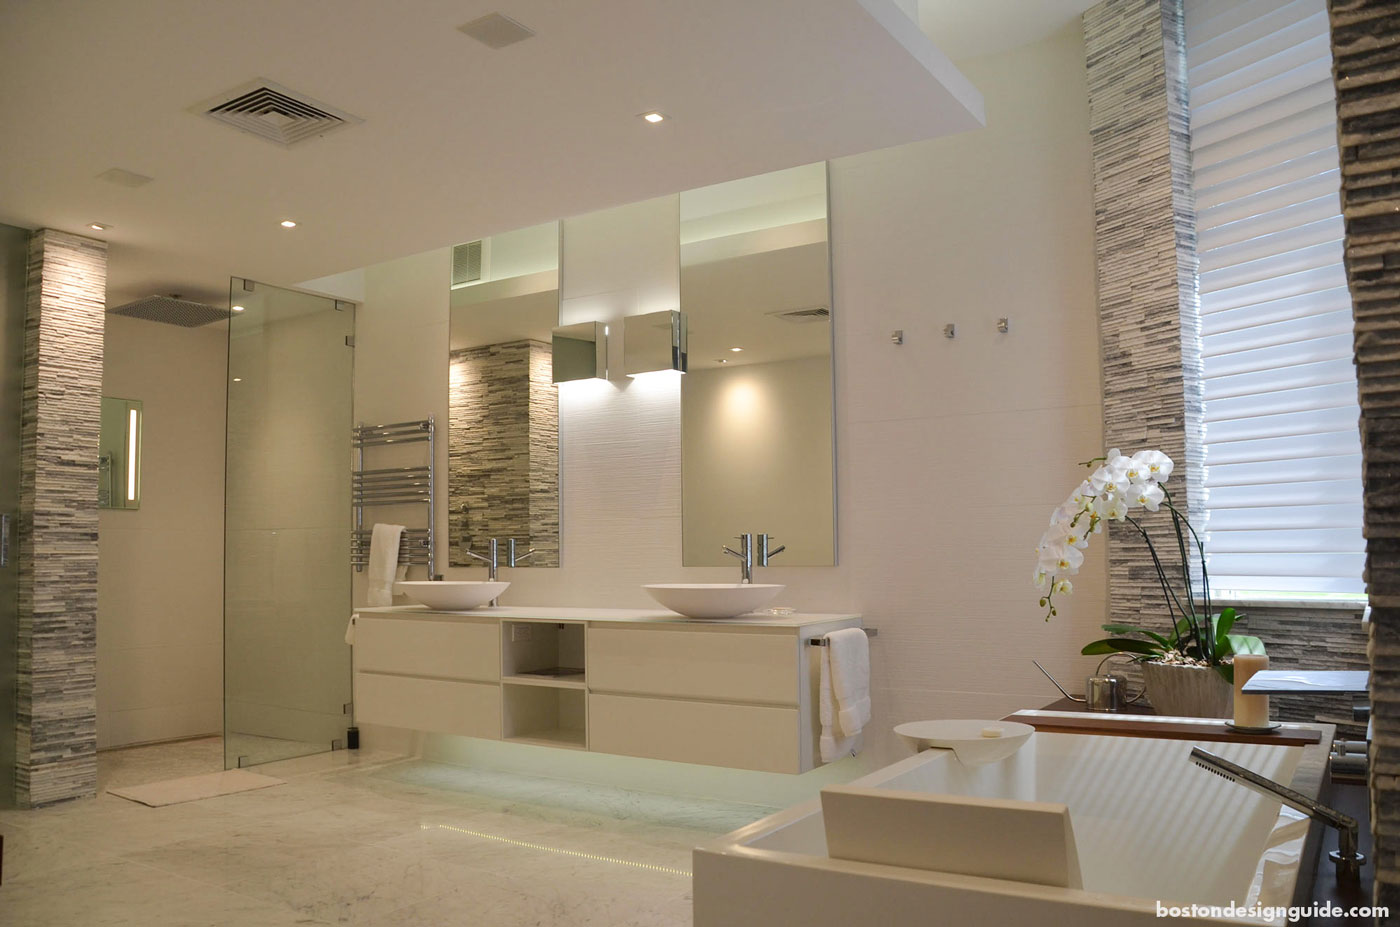 Master bath with home integration technology by SDI